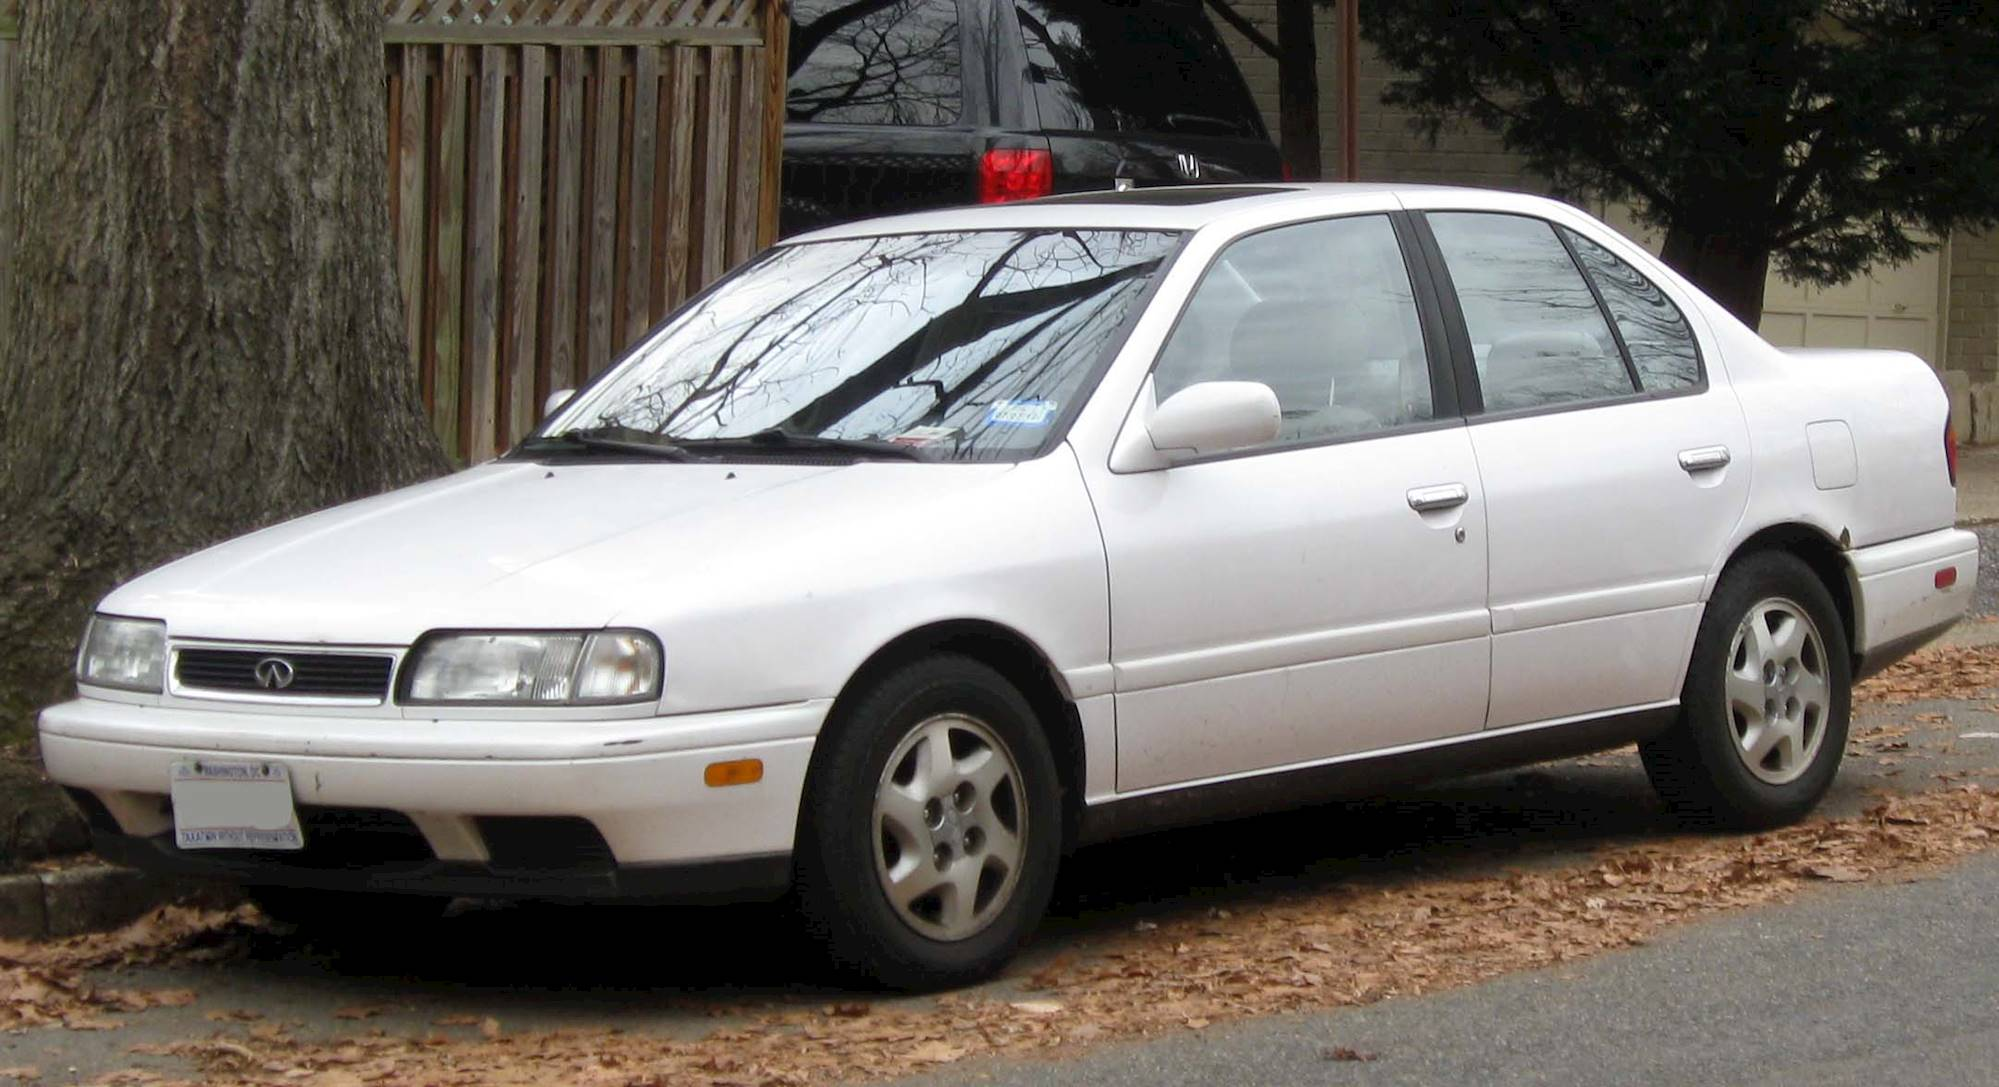 1993 Infiniti G20 Engine Diagram Electrical Wiring Diagrams Toyota Paseo 96 Manual Complete U2022 White Infinity